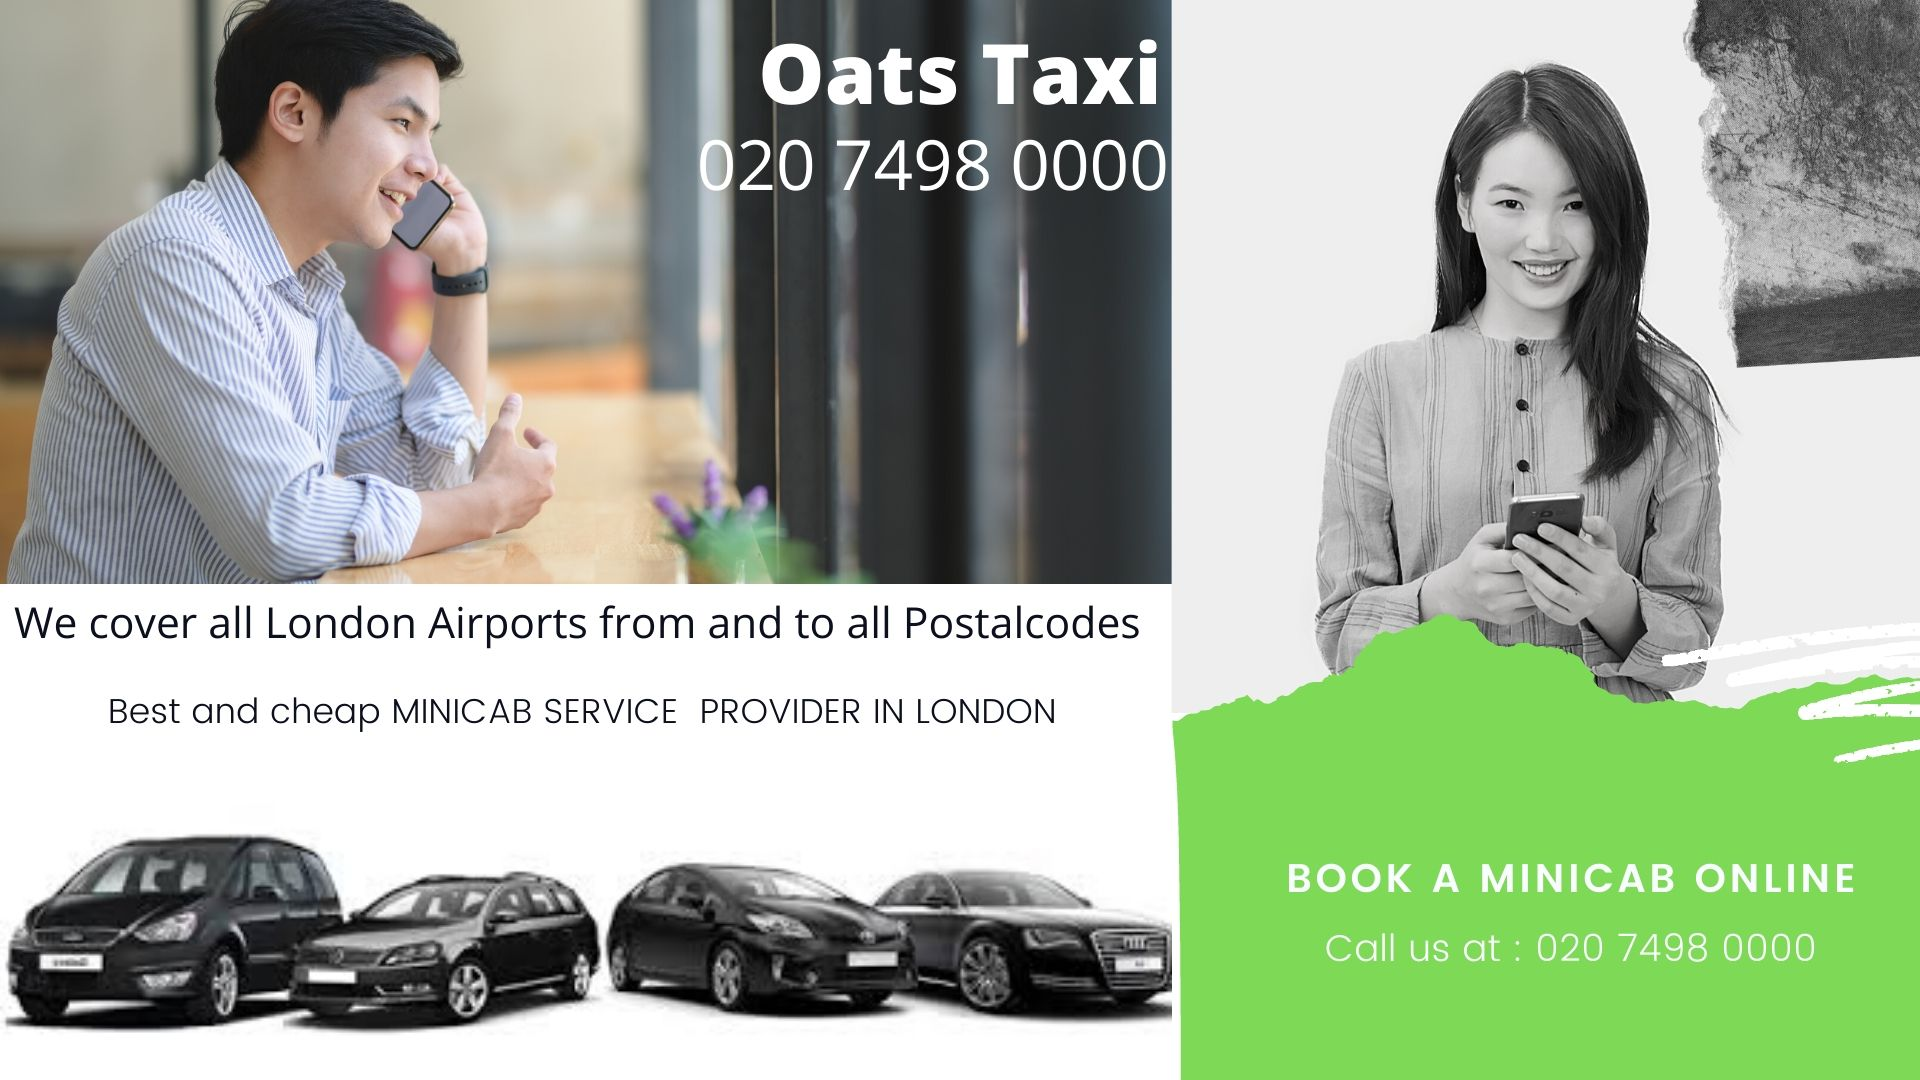 Minicab Near KELMSCOTT ROAD, Battersea SW11, Minicab From Battersea SW11 To Gatwick Airport